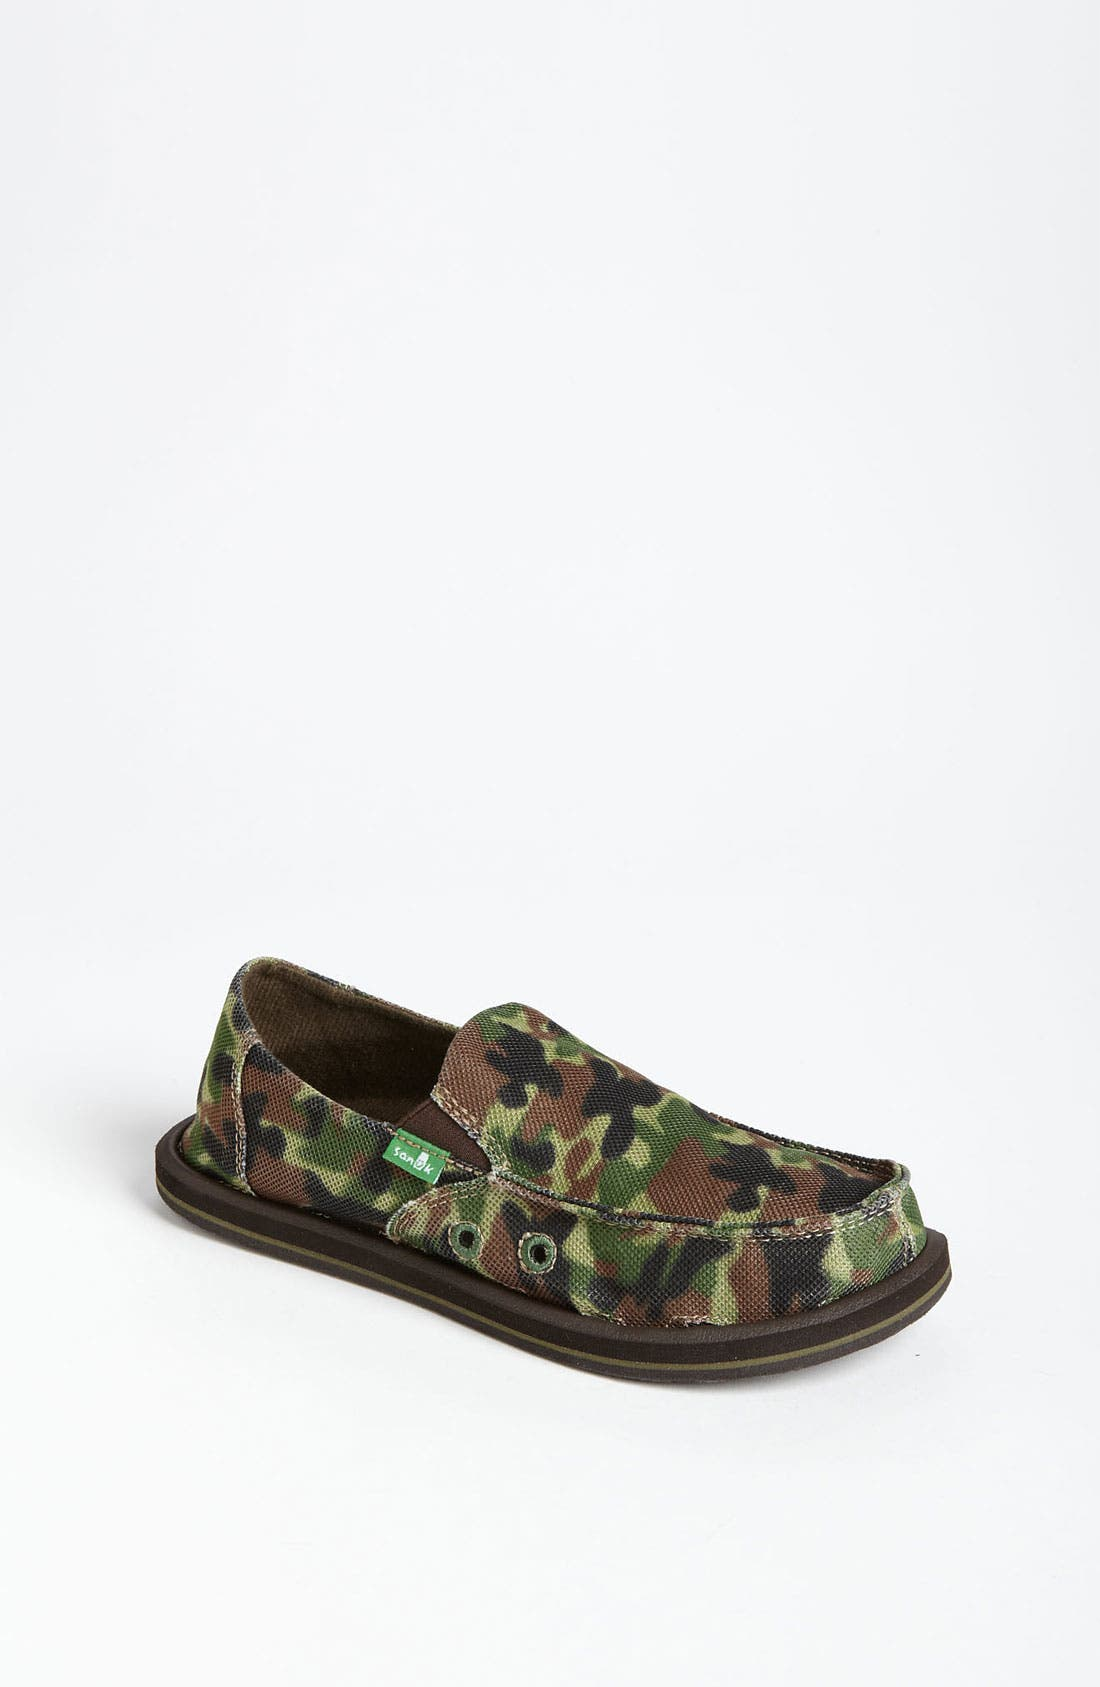 Main Image - Sanuk 'Army Brat' Slip-On (Toddler, Little Kid & Big Kid)